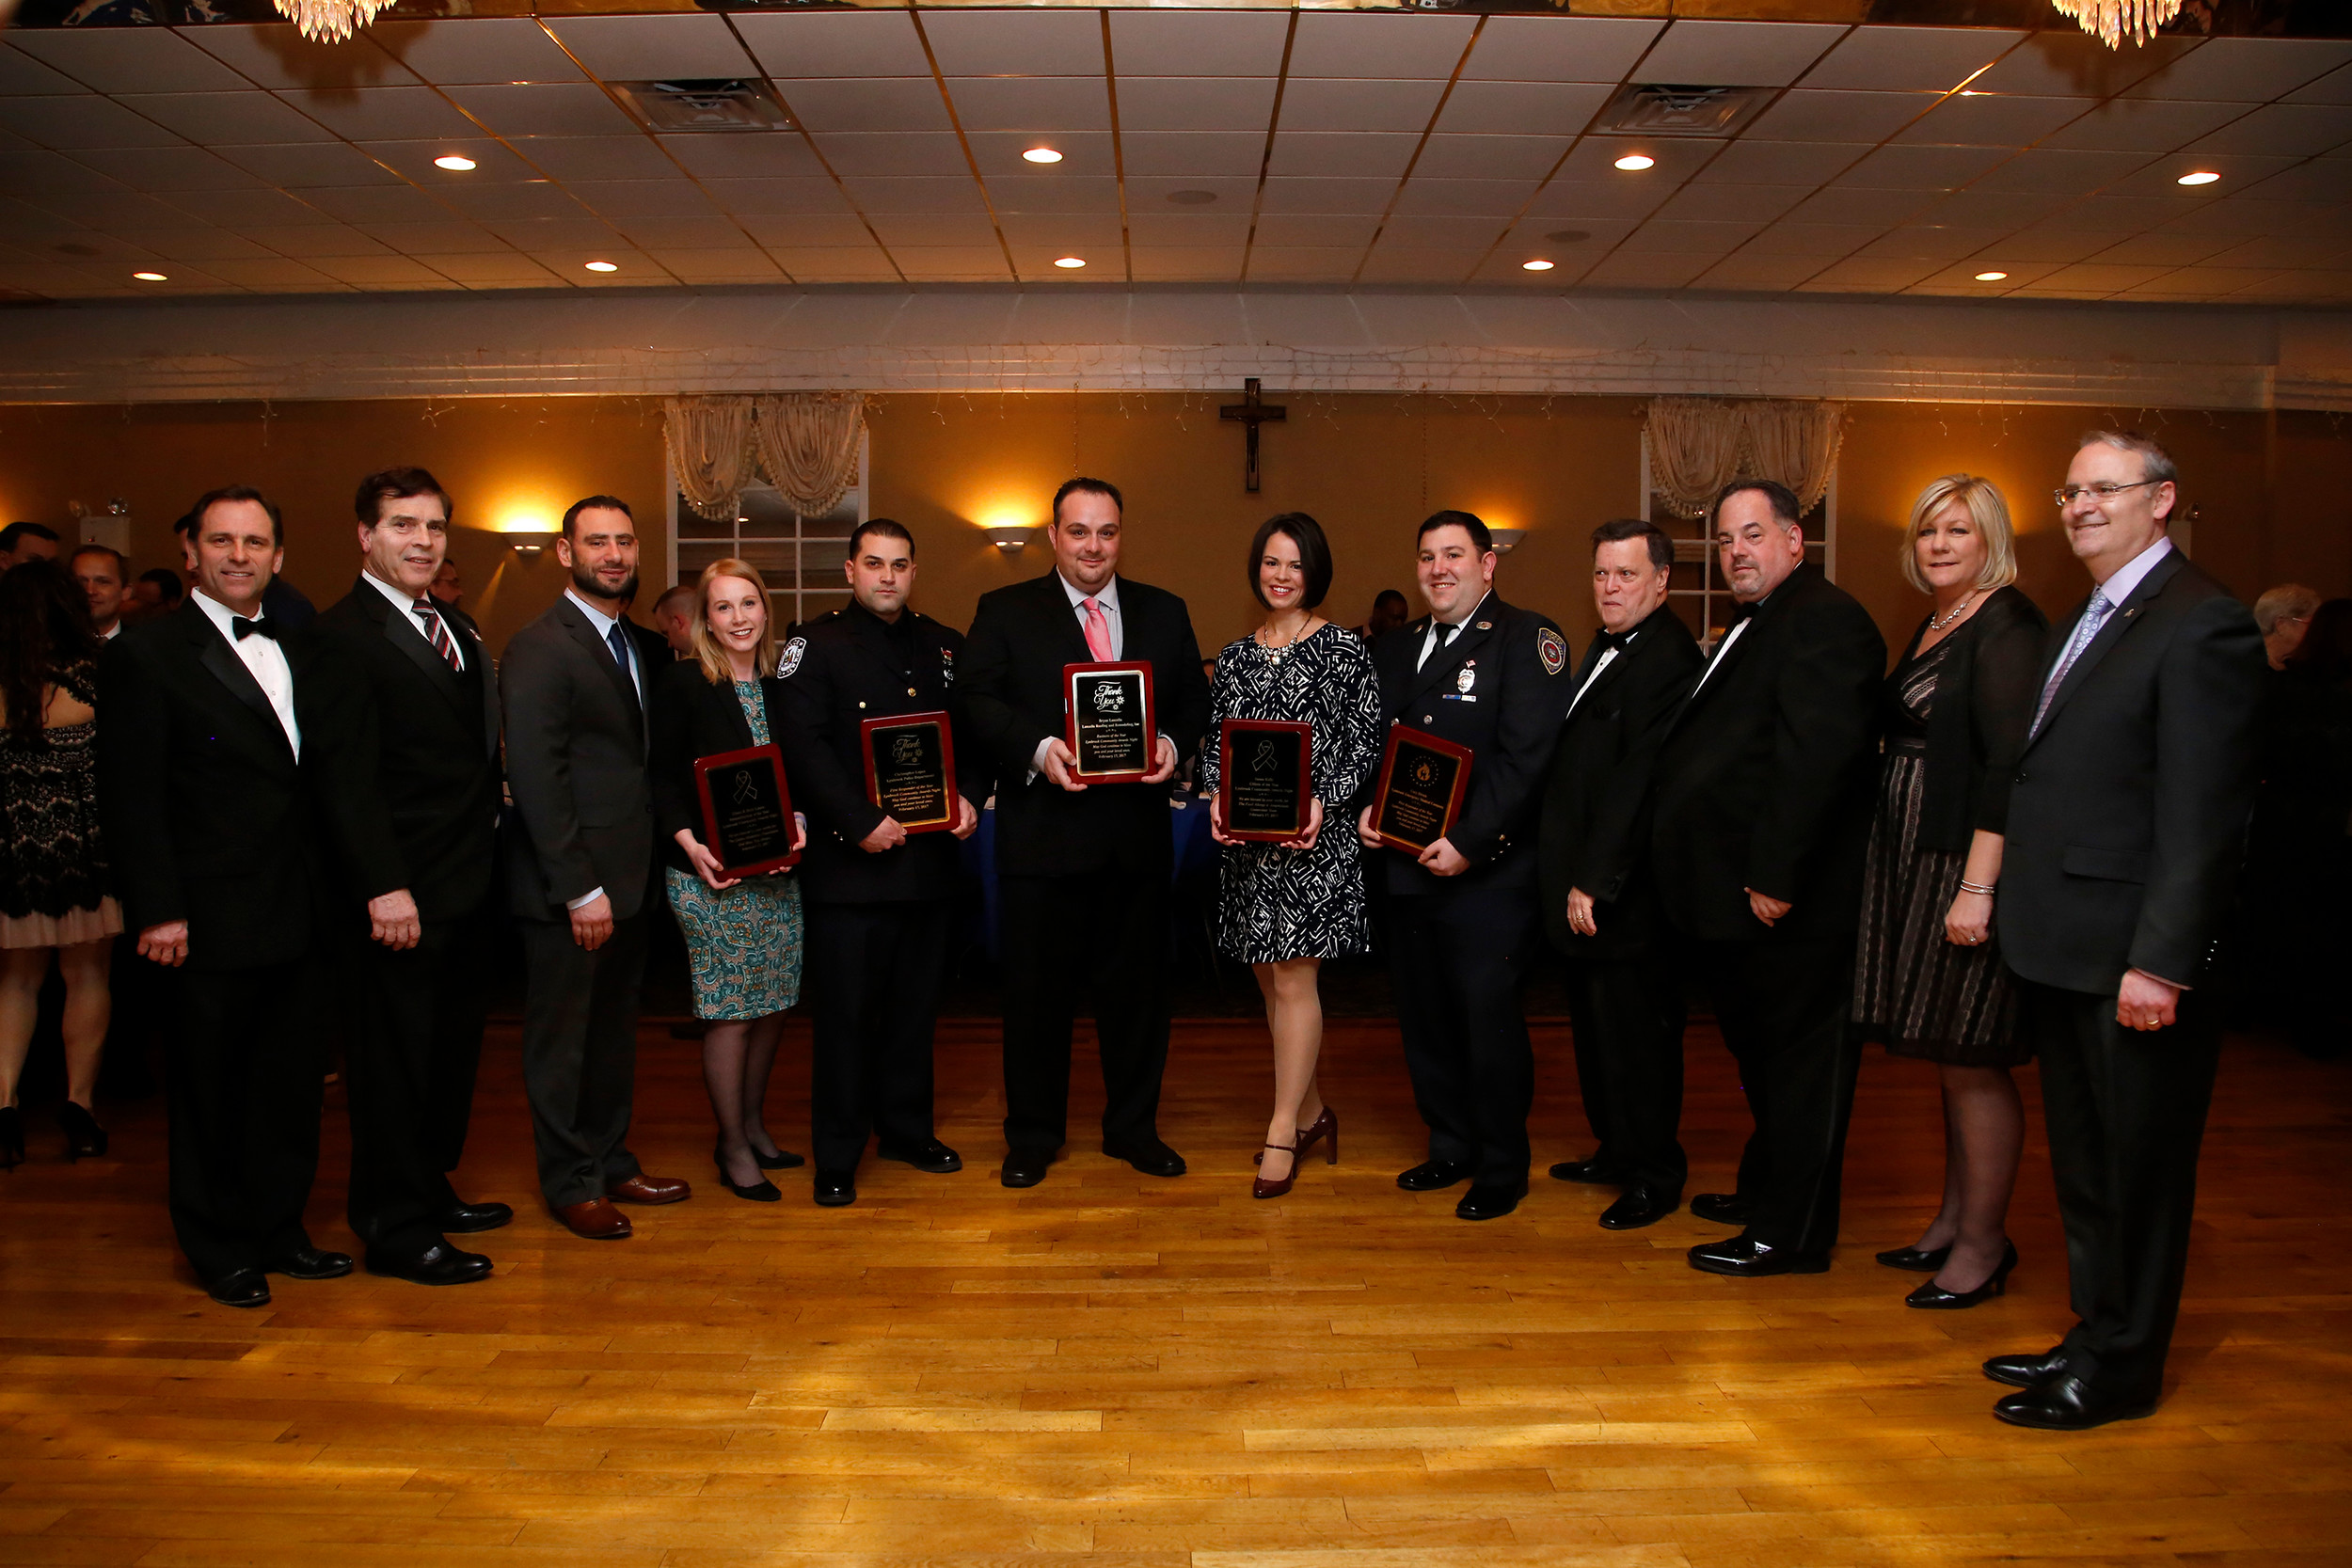 Brett and Eileen Linzer, third and fourth from left, were among the award recipients. They were honored with the Humanitarians of the Year Award.